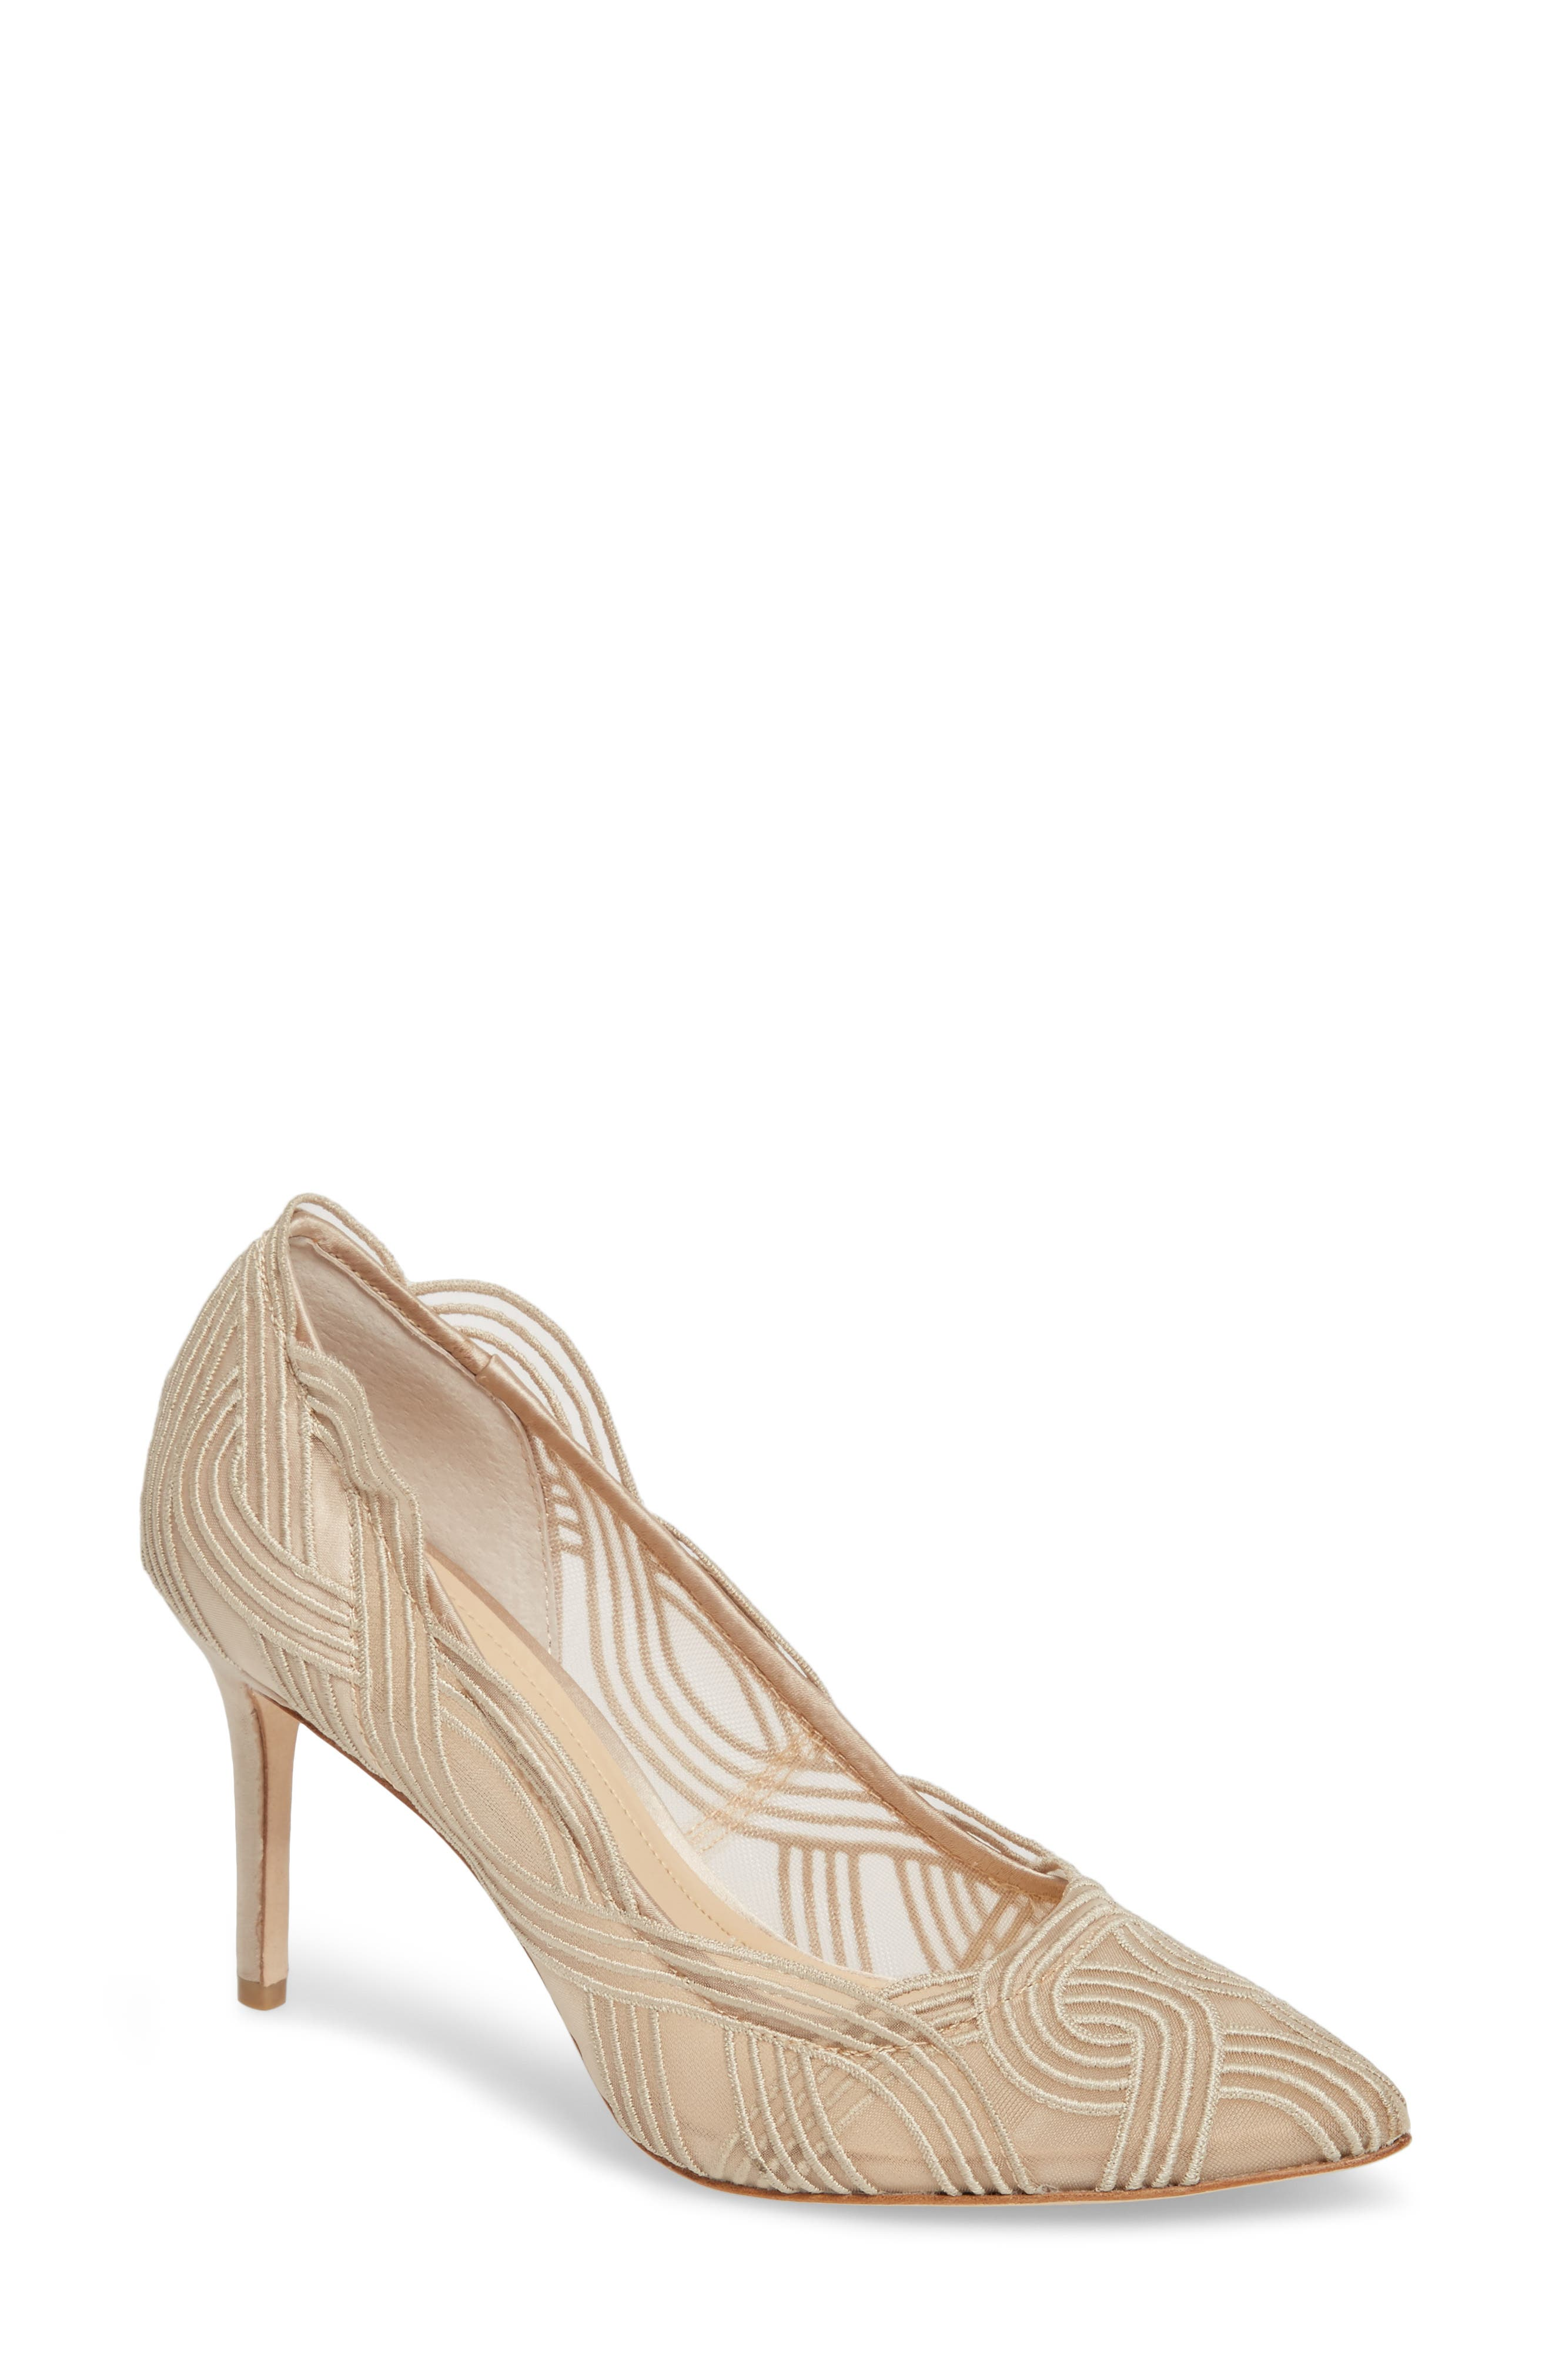 Imagine Vince Camuto Maeson Textured Mesh Pump,                         Main,                         color, Light Sand Mesh